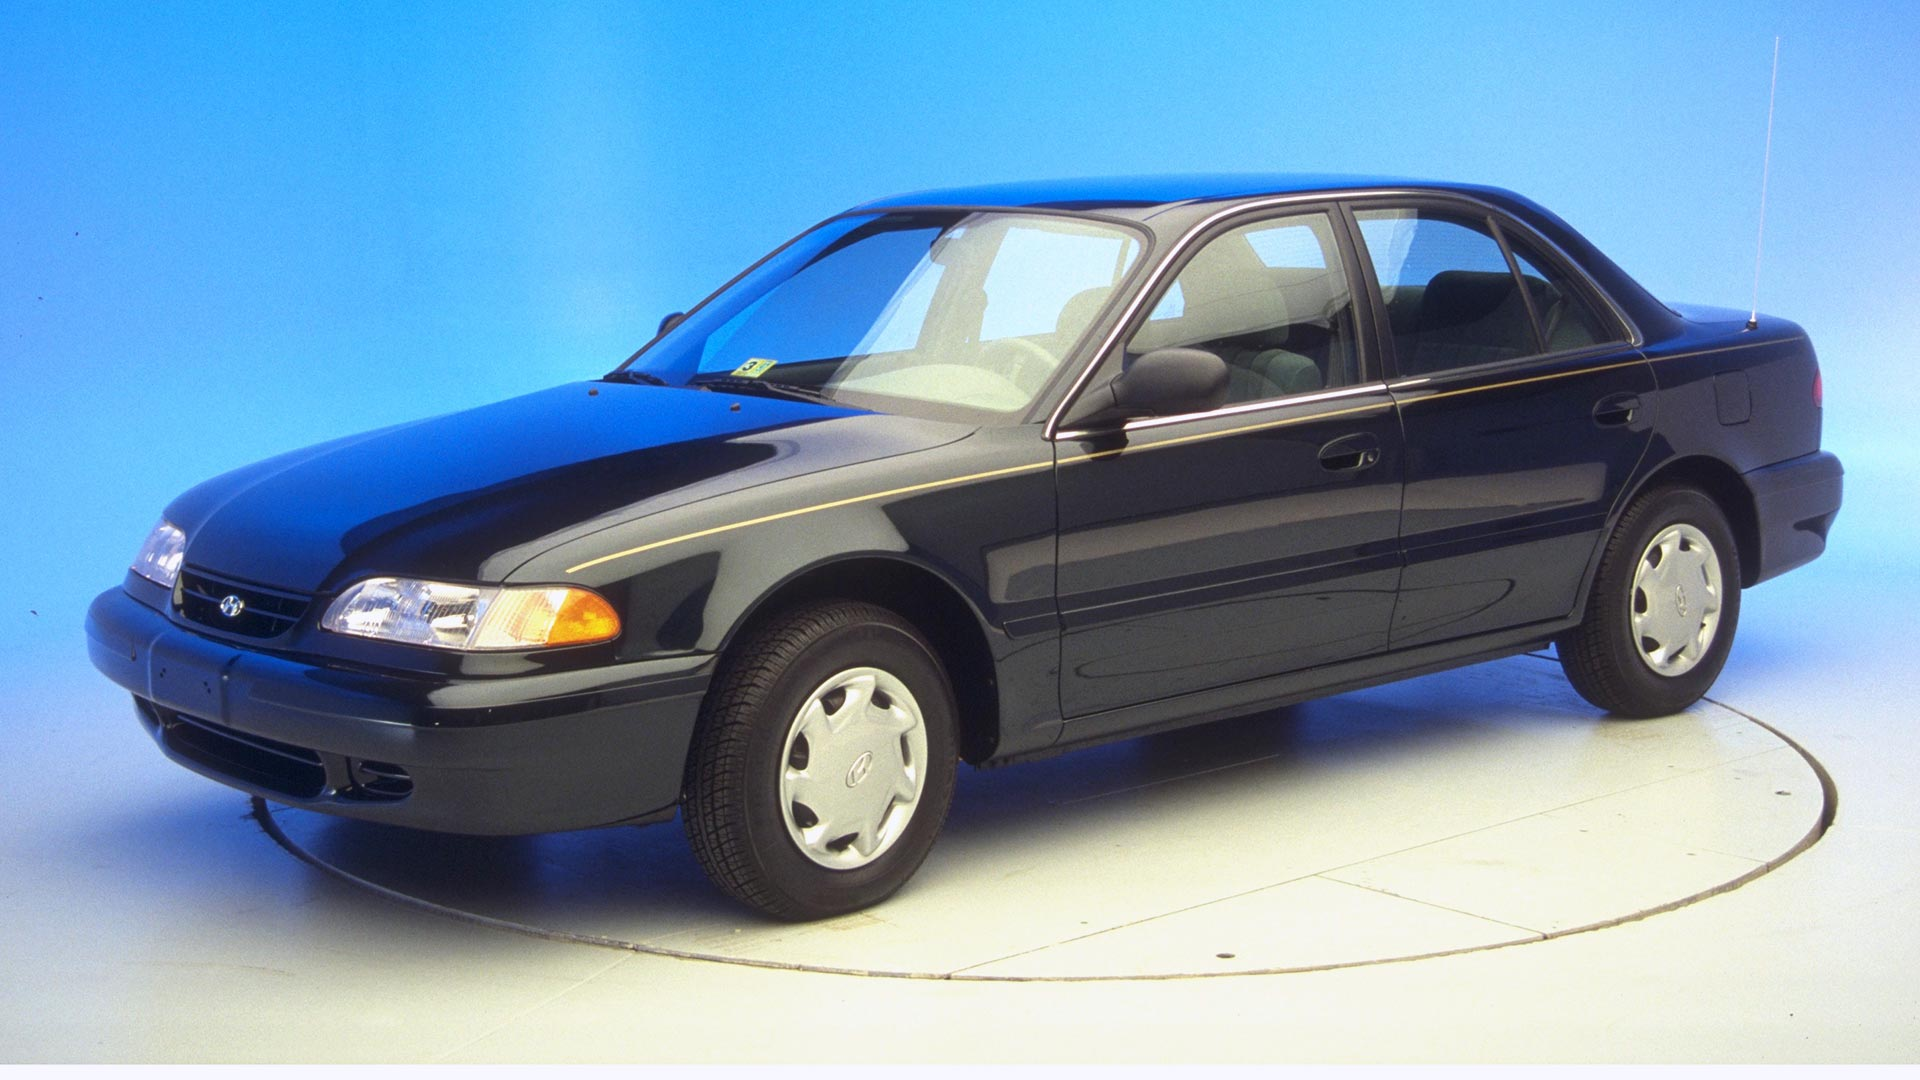 1997 Hyundai Sonata 4-door sedan